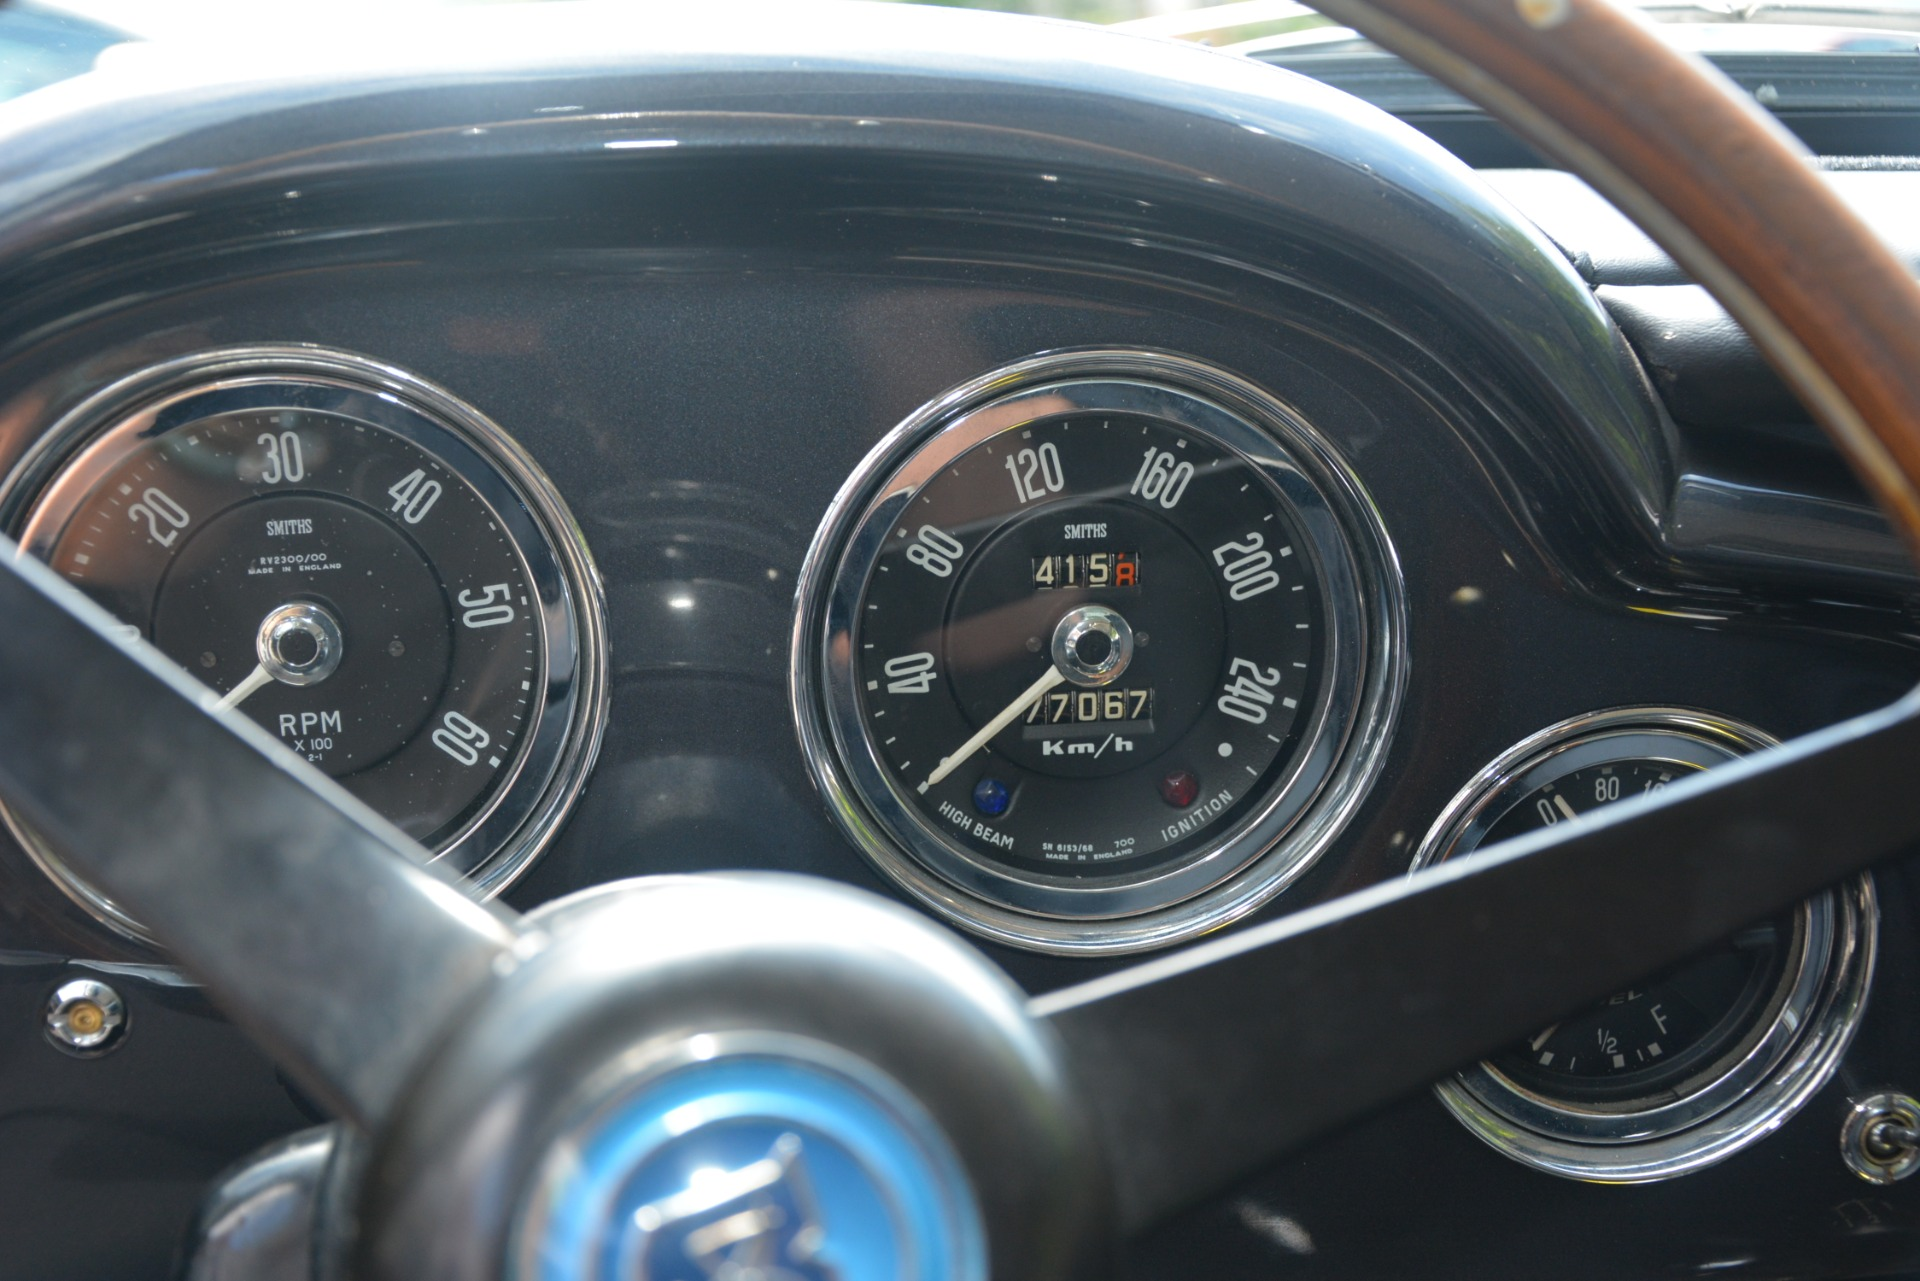 Used 1961 Aston Martin DB4 Series IV Coupe For Sale In Greenwich, CT 3186_p29